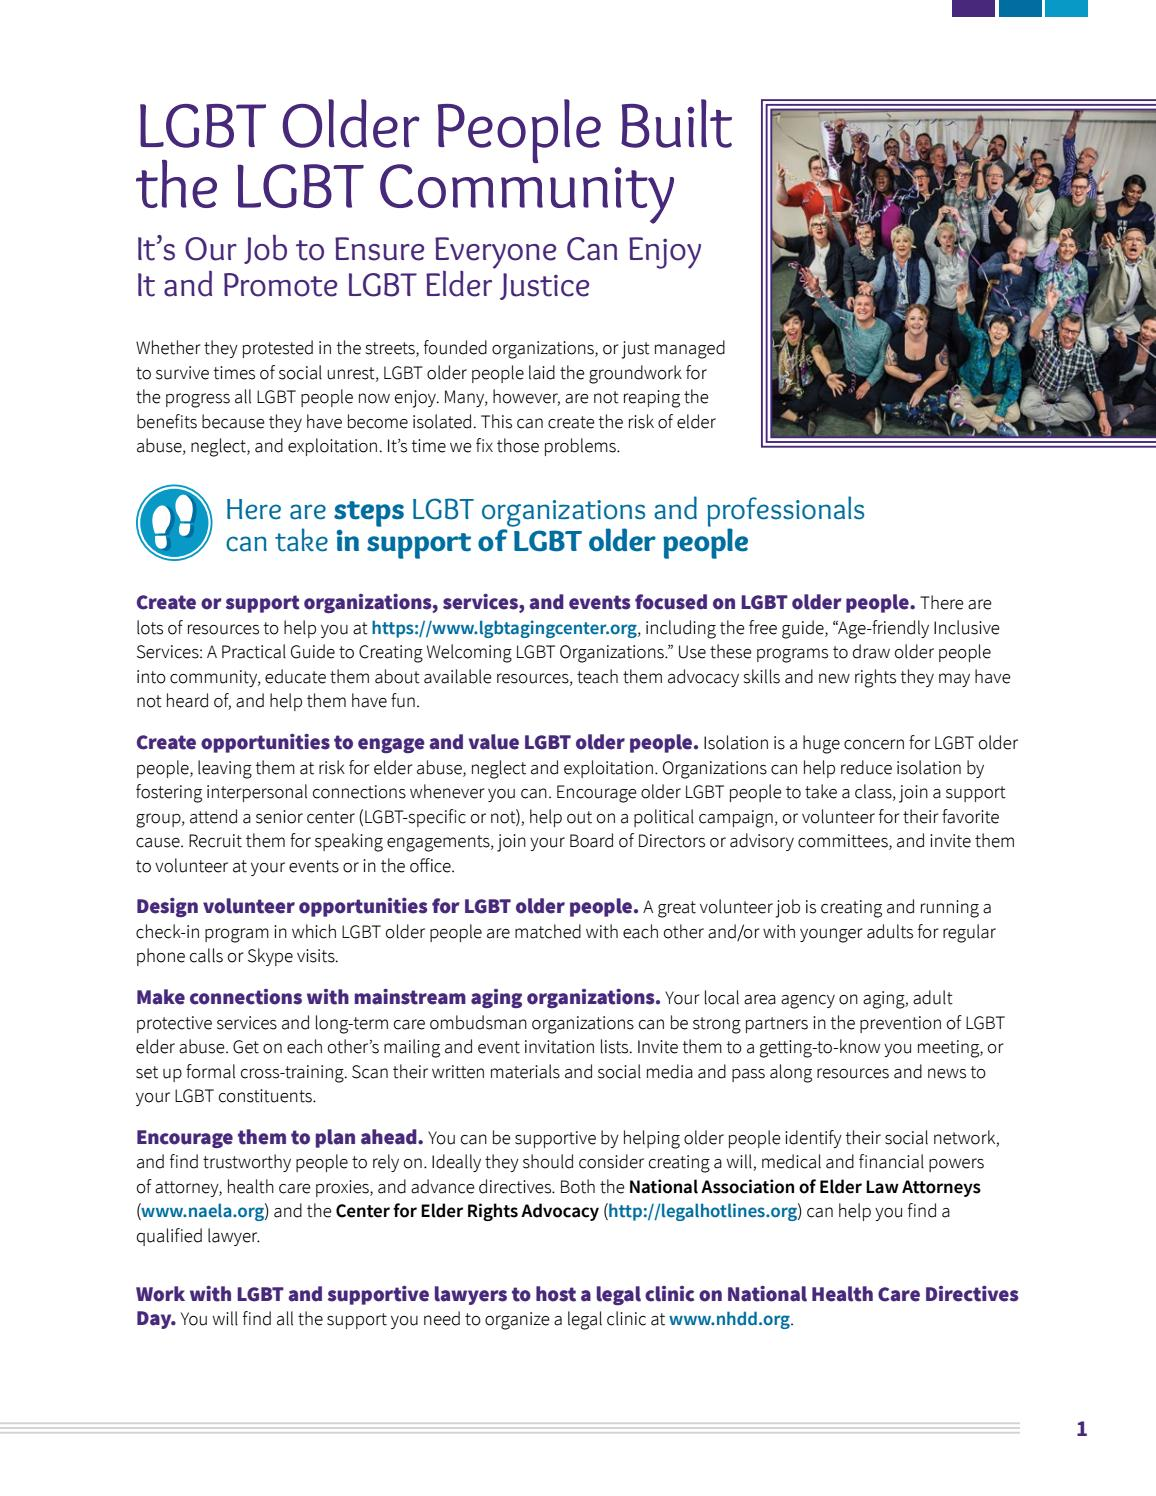 LGBT Older People Built the LGBT Community by SAGE - issuu